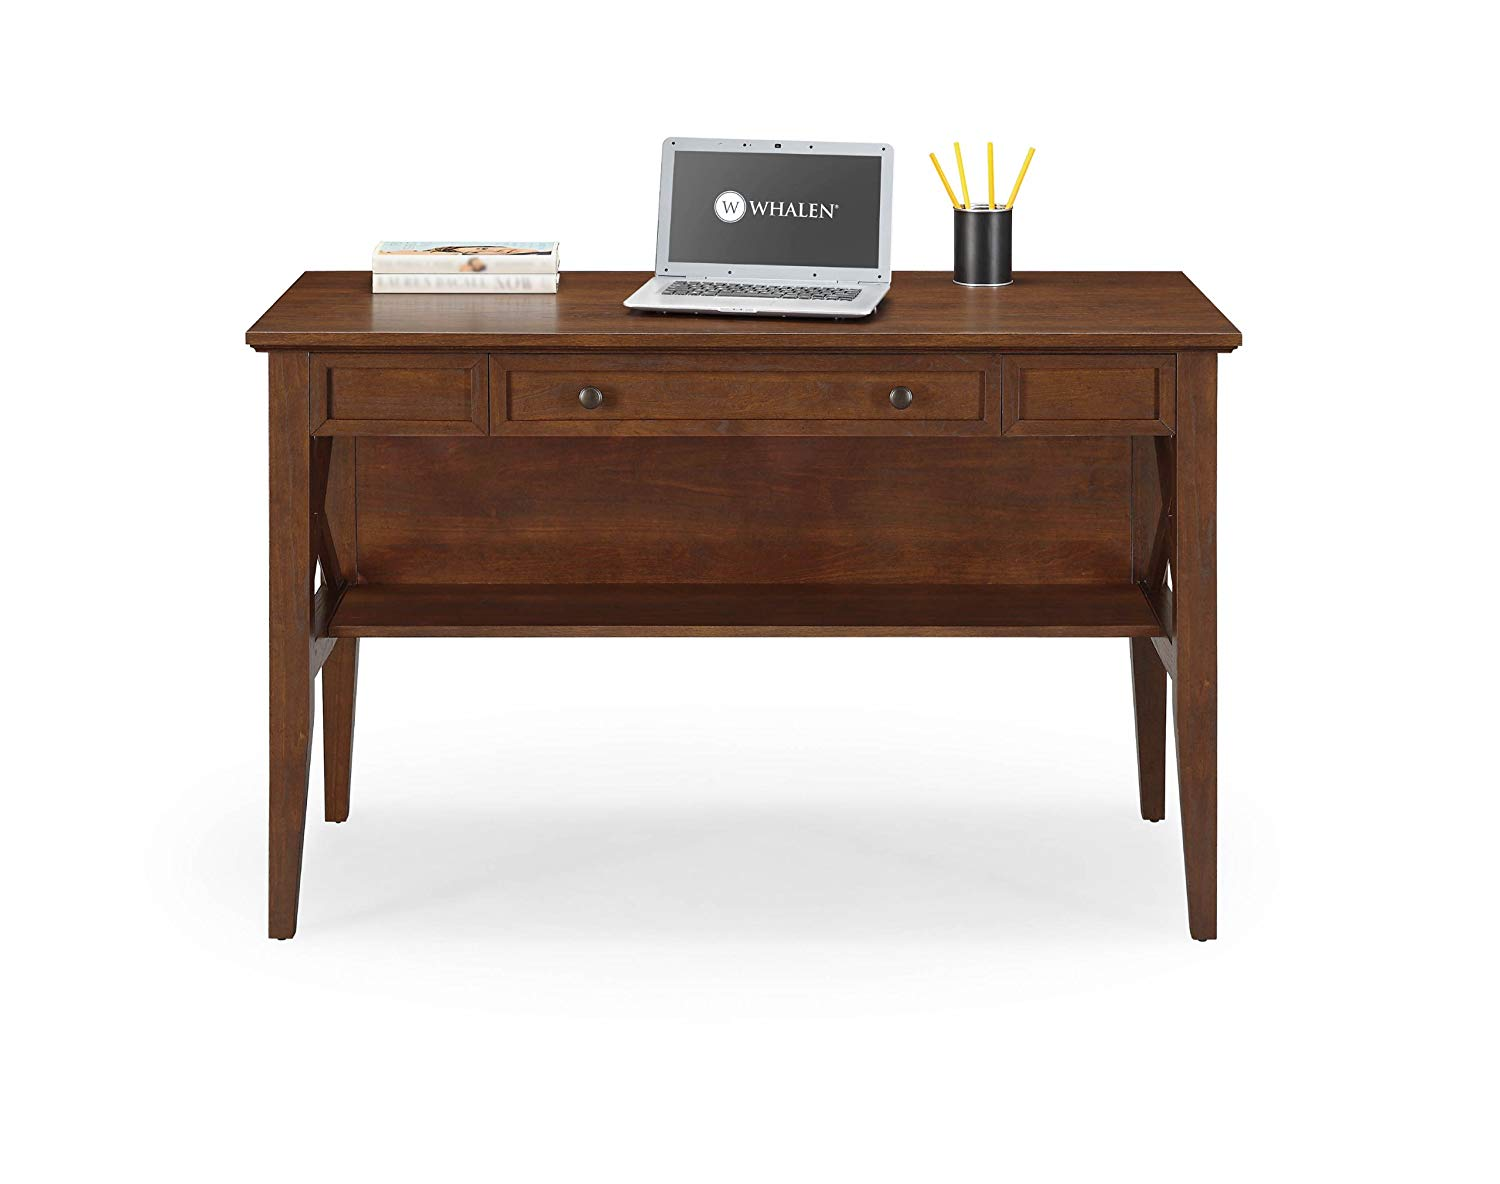 whalen furniture norcross laptop desk end table kitchen home homesense bedroom small round glass top coffee distressed square farrington chairside ethan allen arcata sectional